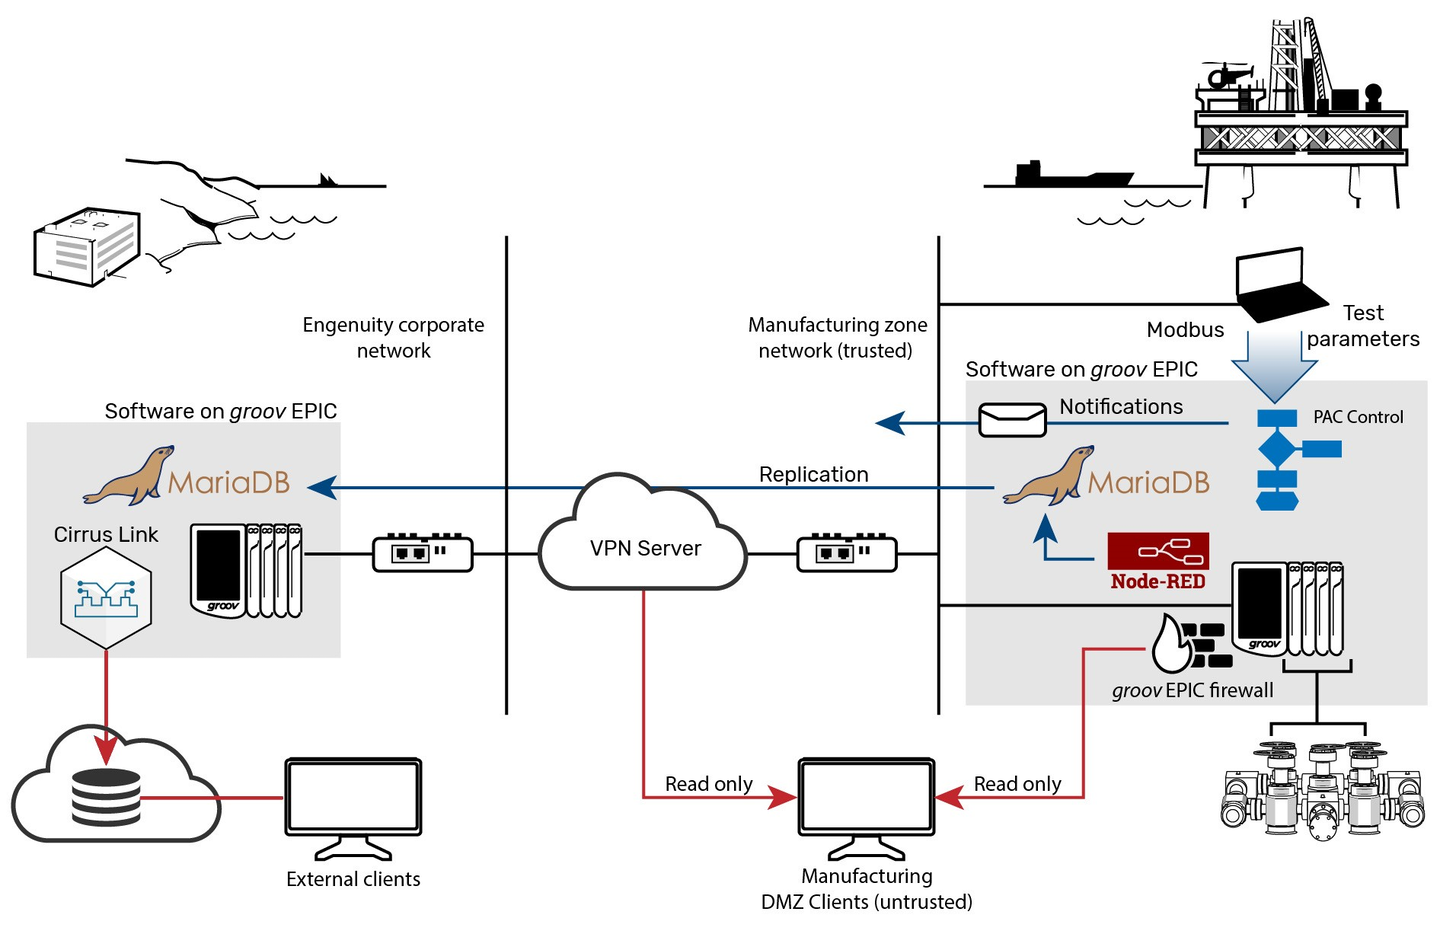 BOPX uses Opto 22's Groov EPIC to control the testing process, generate alarm notifications, execute database transactions using Node-Red, store and replicate data using MariaDB and to separate trusted (blue) and untrusted (red) network traffic.